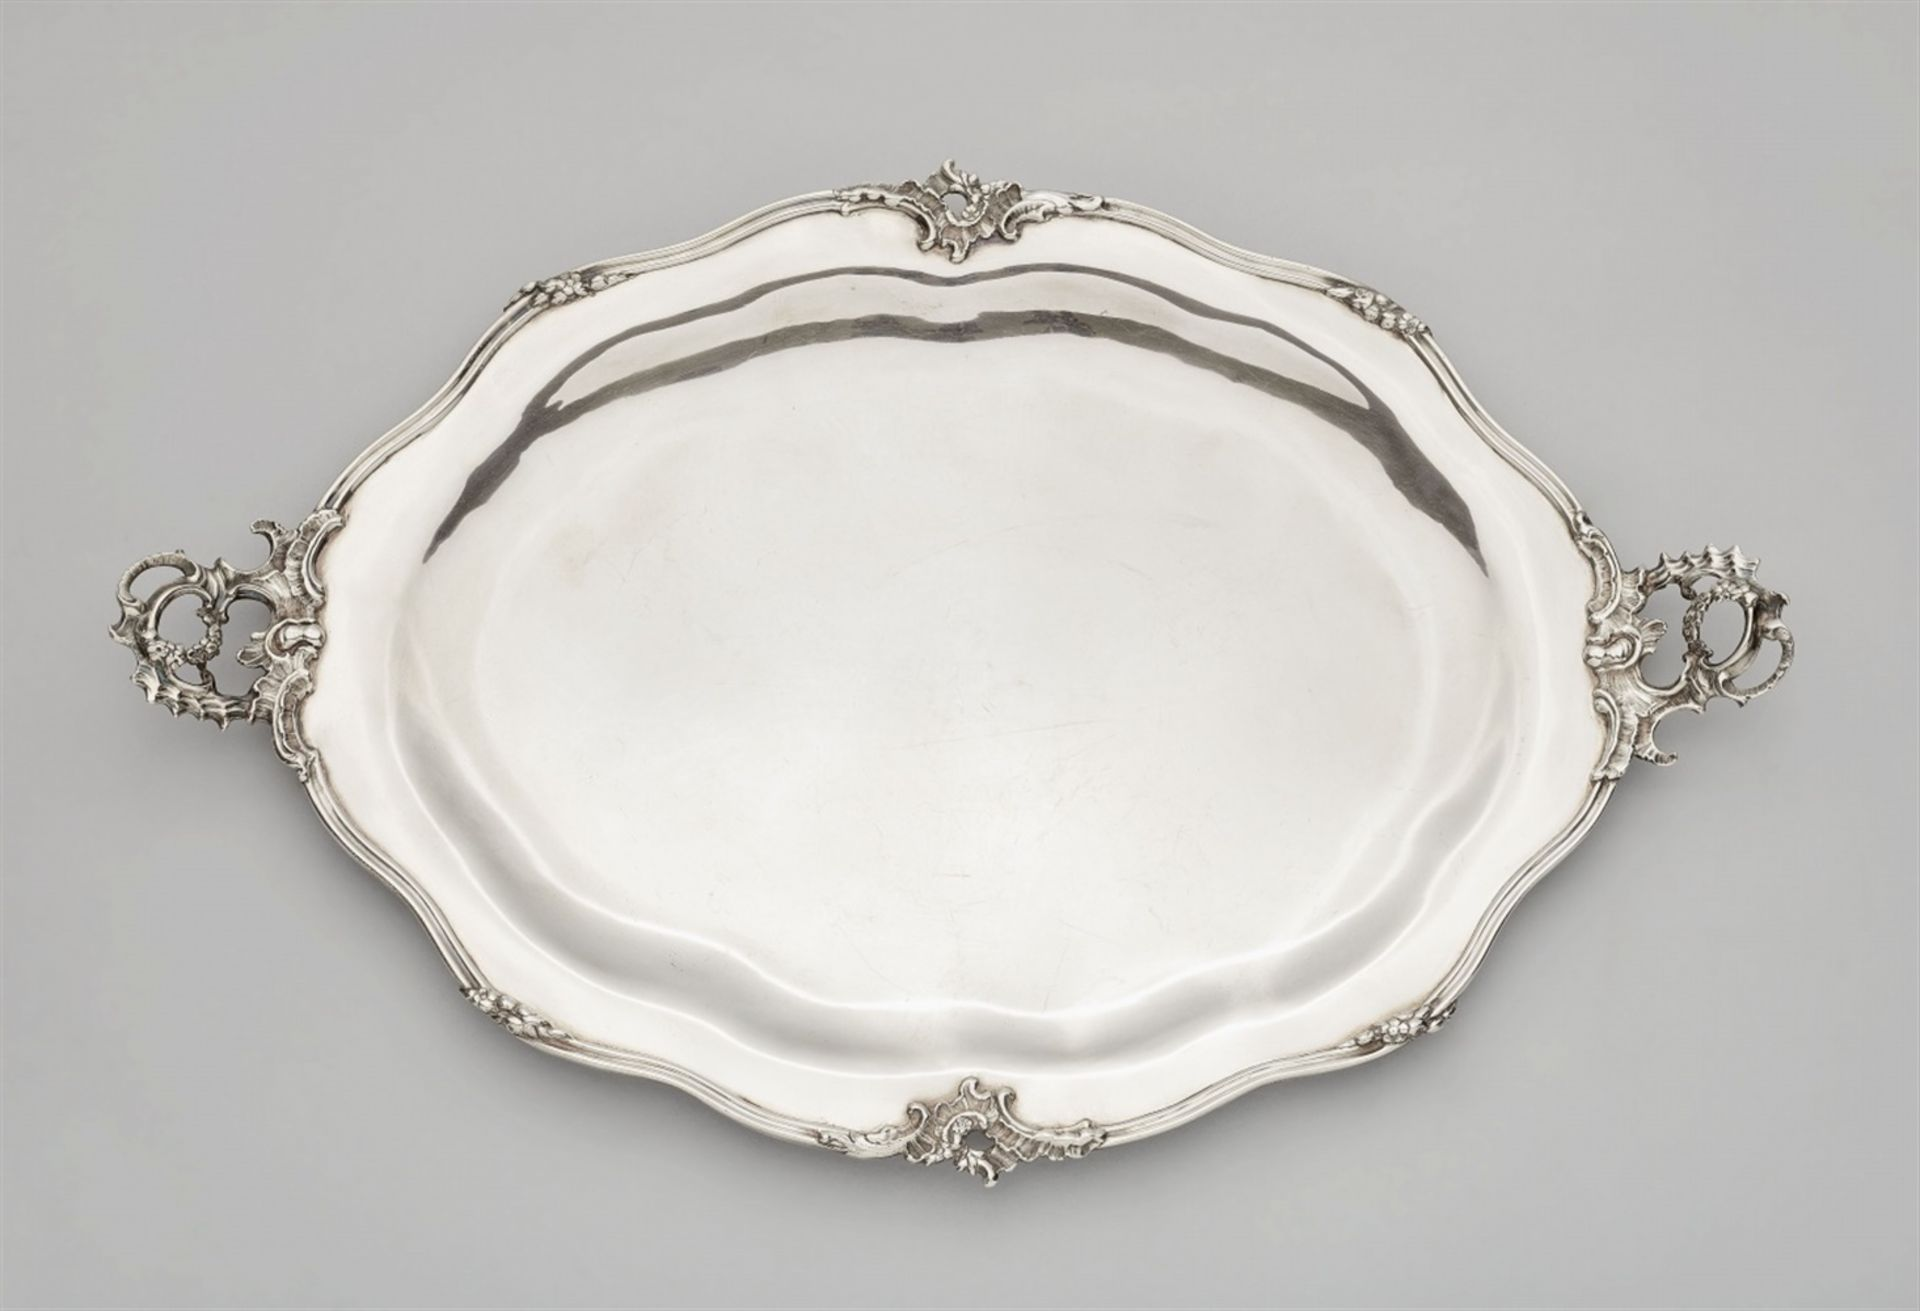 Los 729 - A large Augsburg silver platterA moulded silver platter with rocaille handles, the narrow rim with